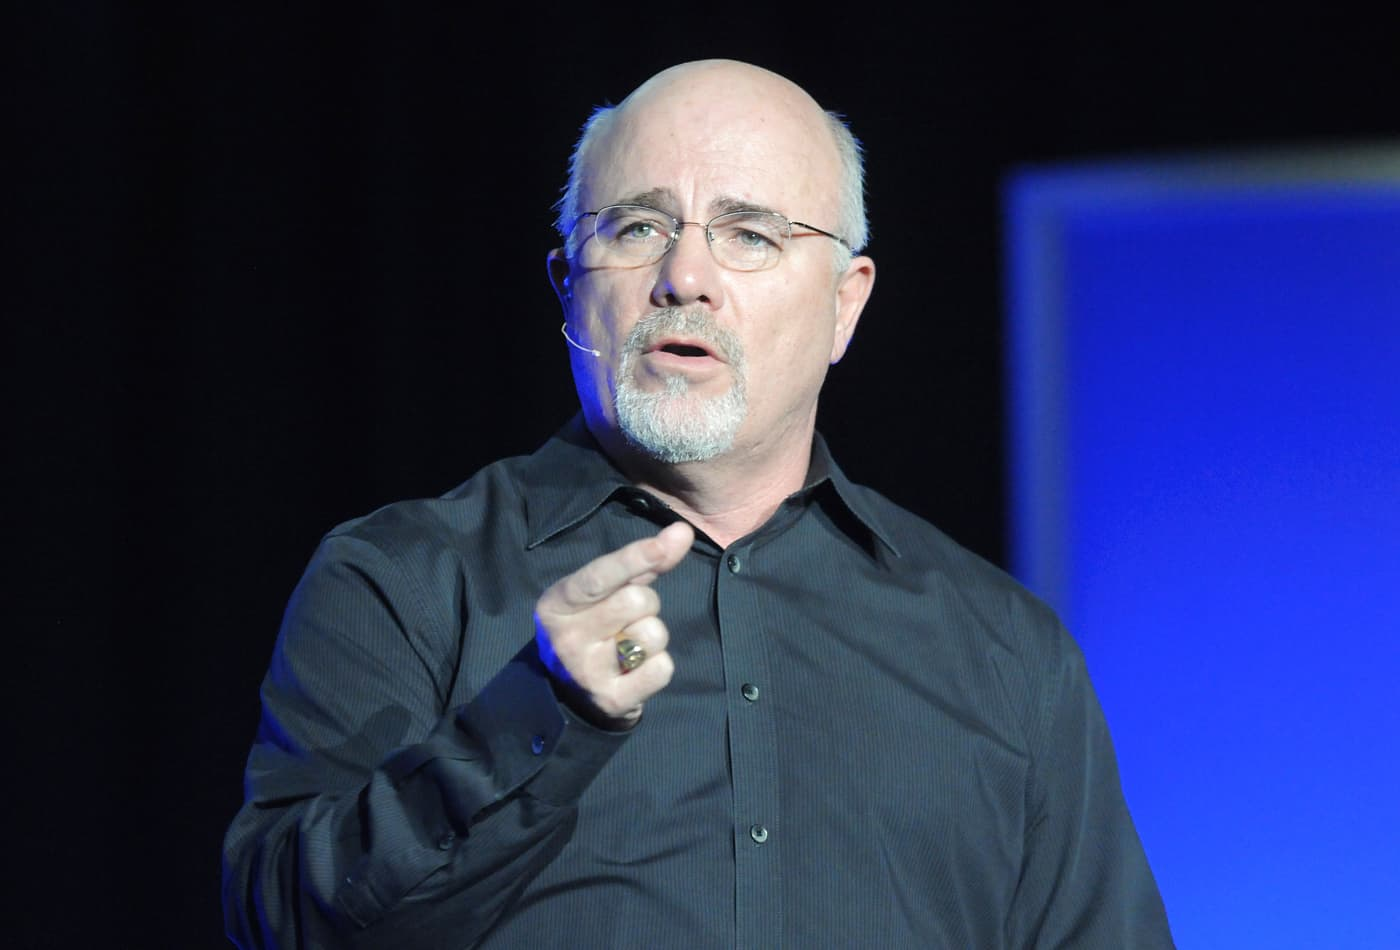 Money expert Dave Ramsey tells students: Skip the 'dream' college and go to school where you can afford